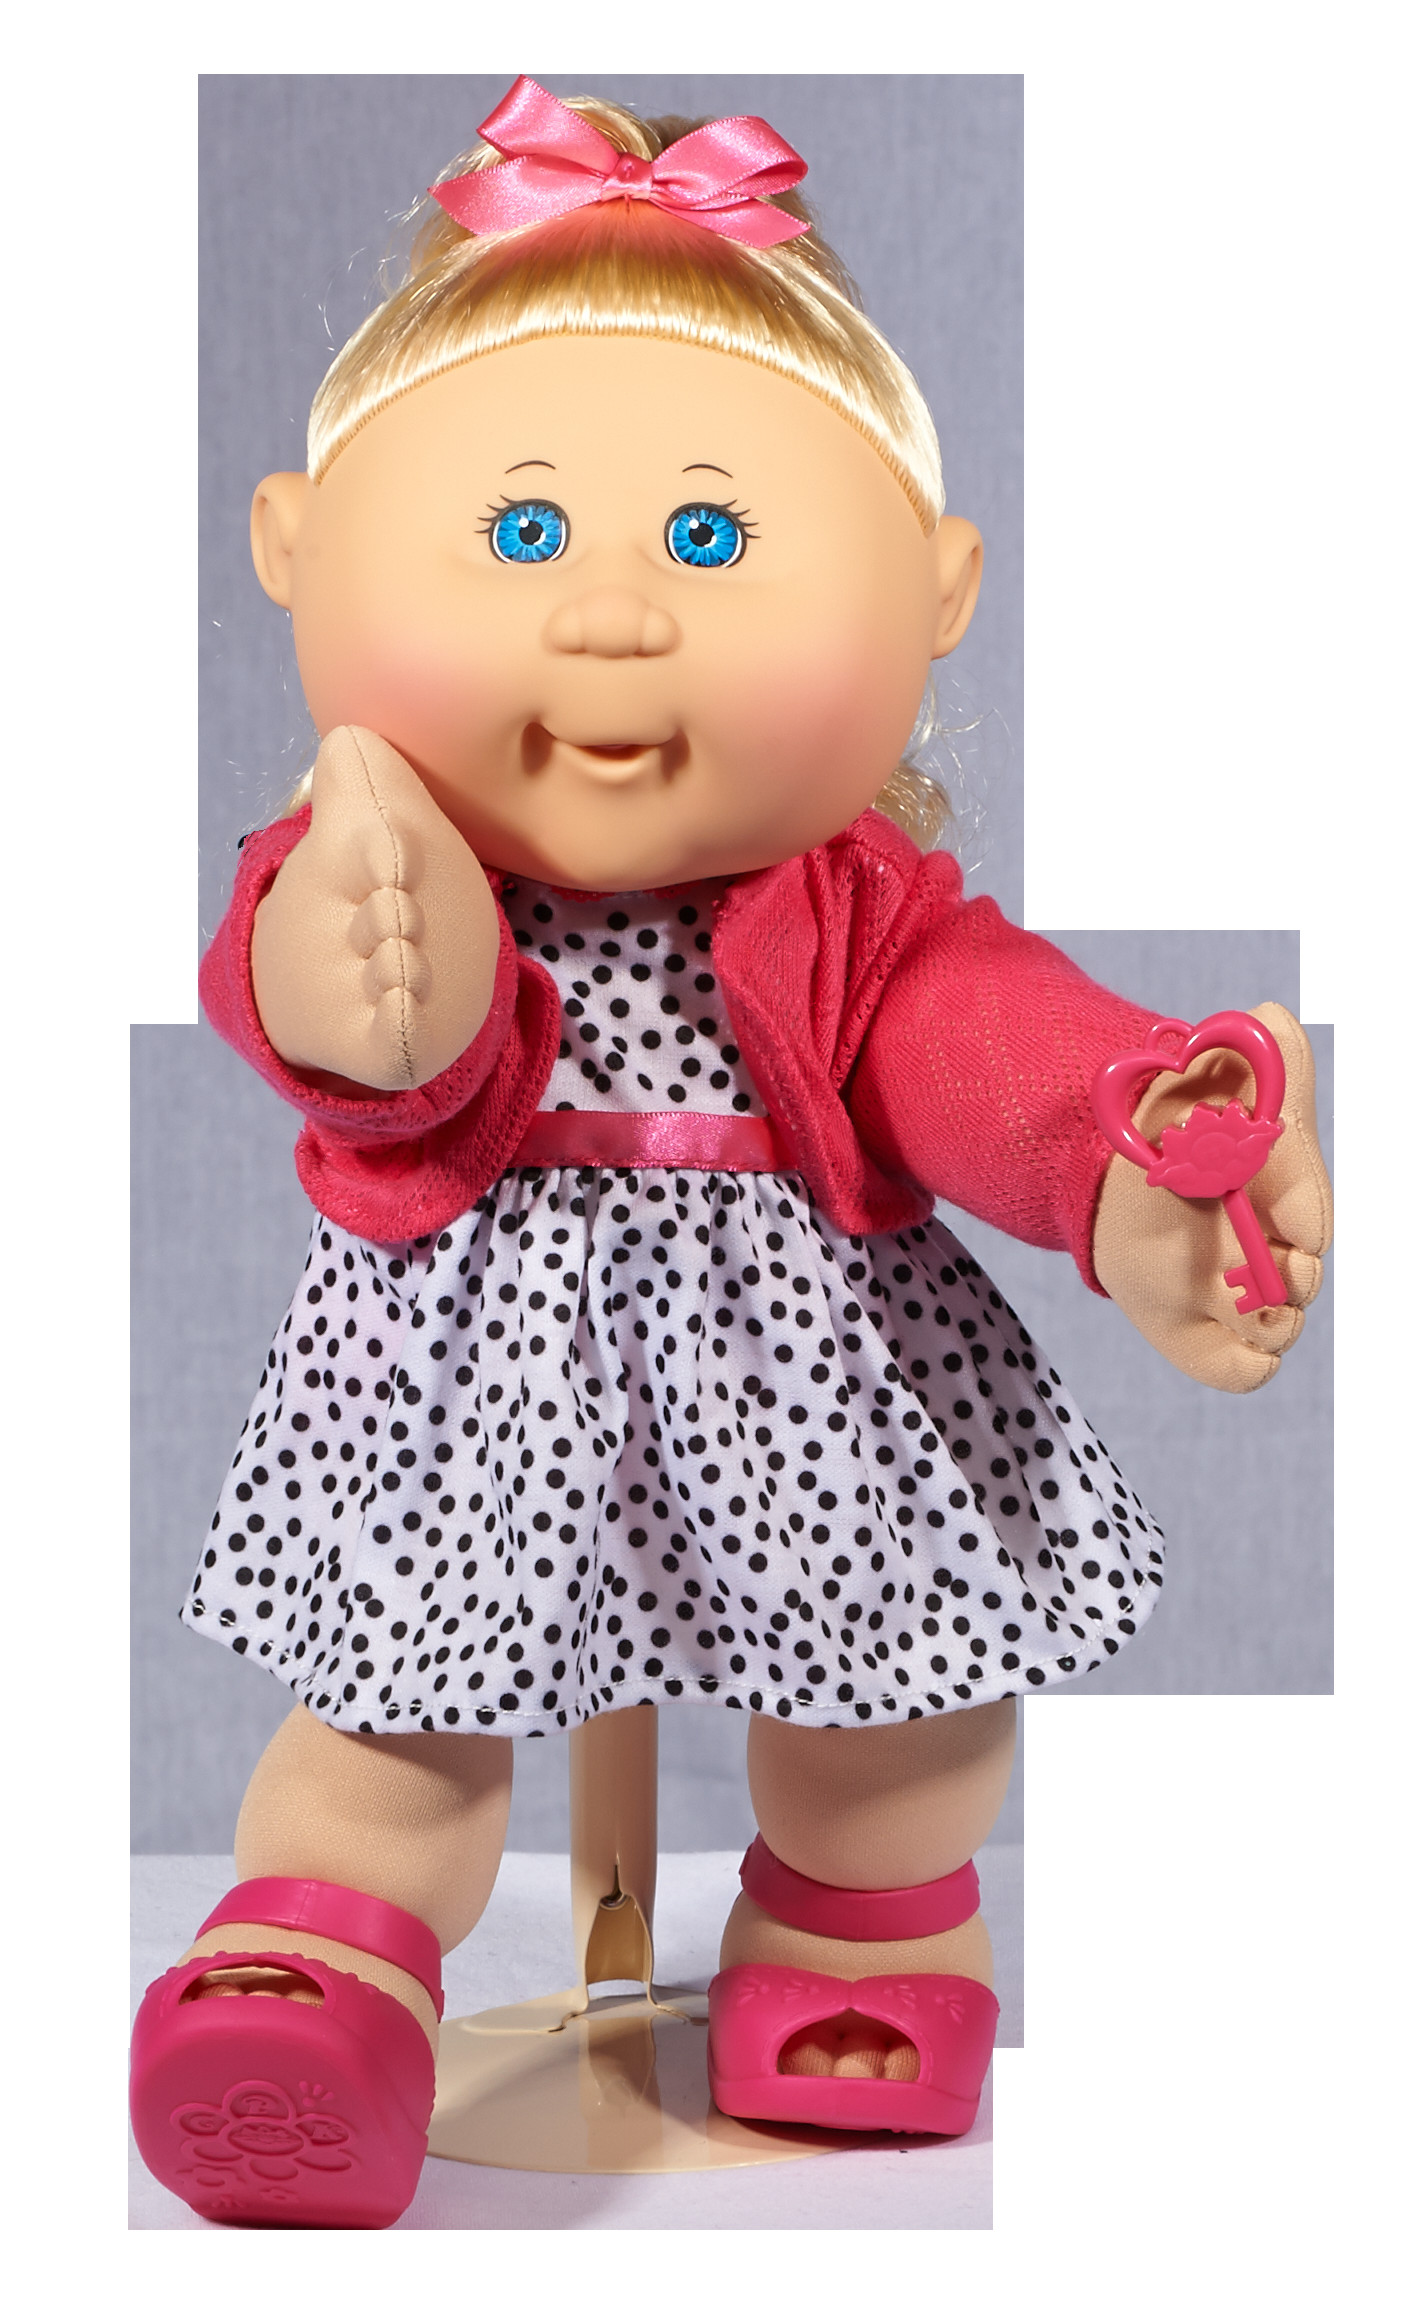 "Cabbage Patch Doll Elegant Cabbage Patch Kids 14"" Baby Doll Blonde Hair & Blue Eyes Of Superb 40 Models Cabbage Patch Doll"